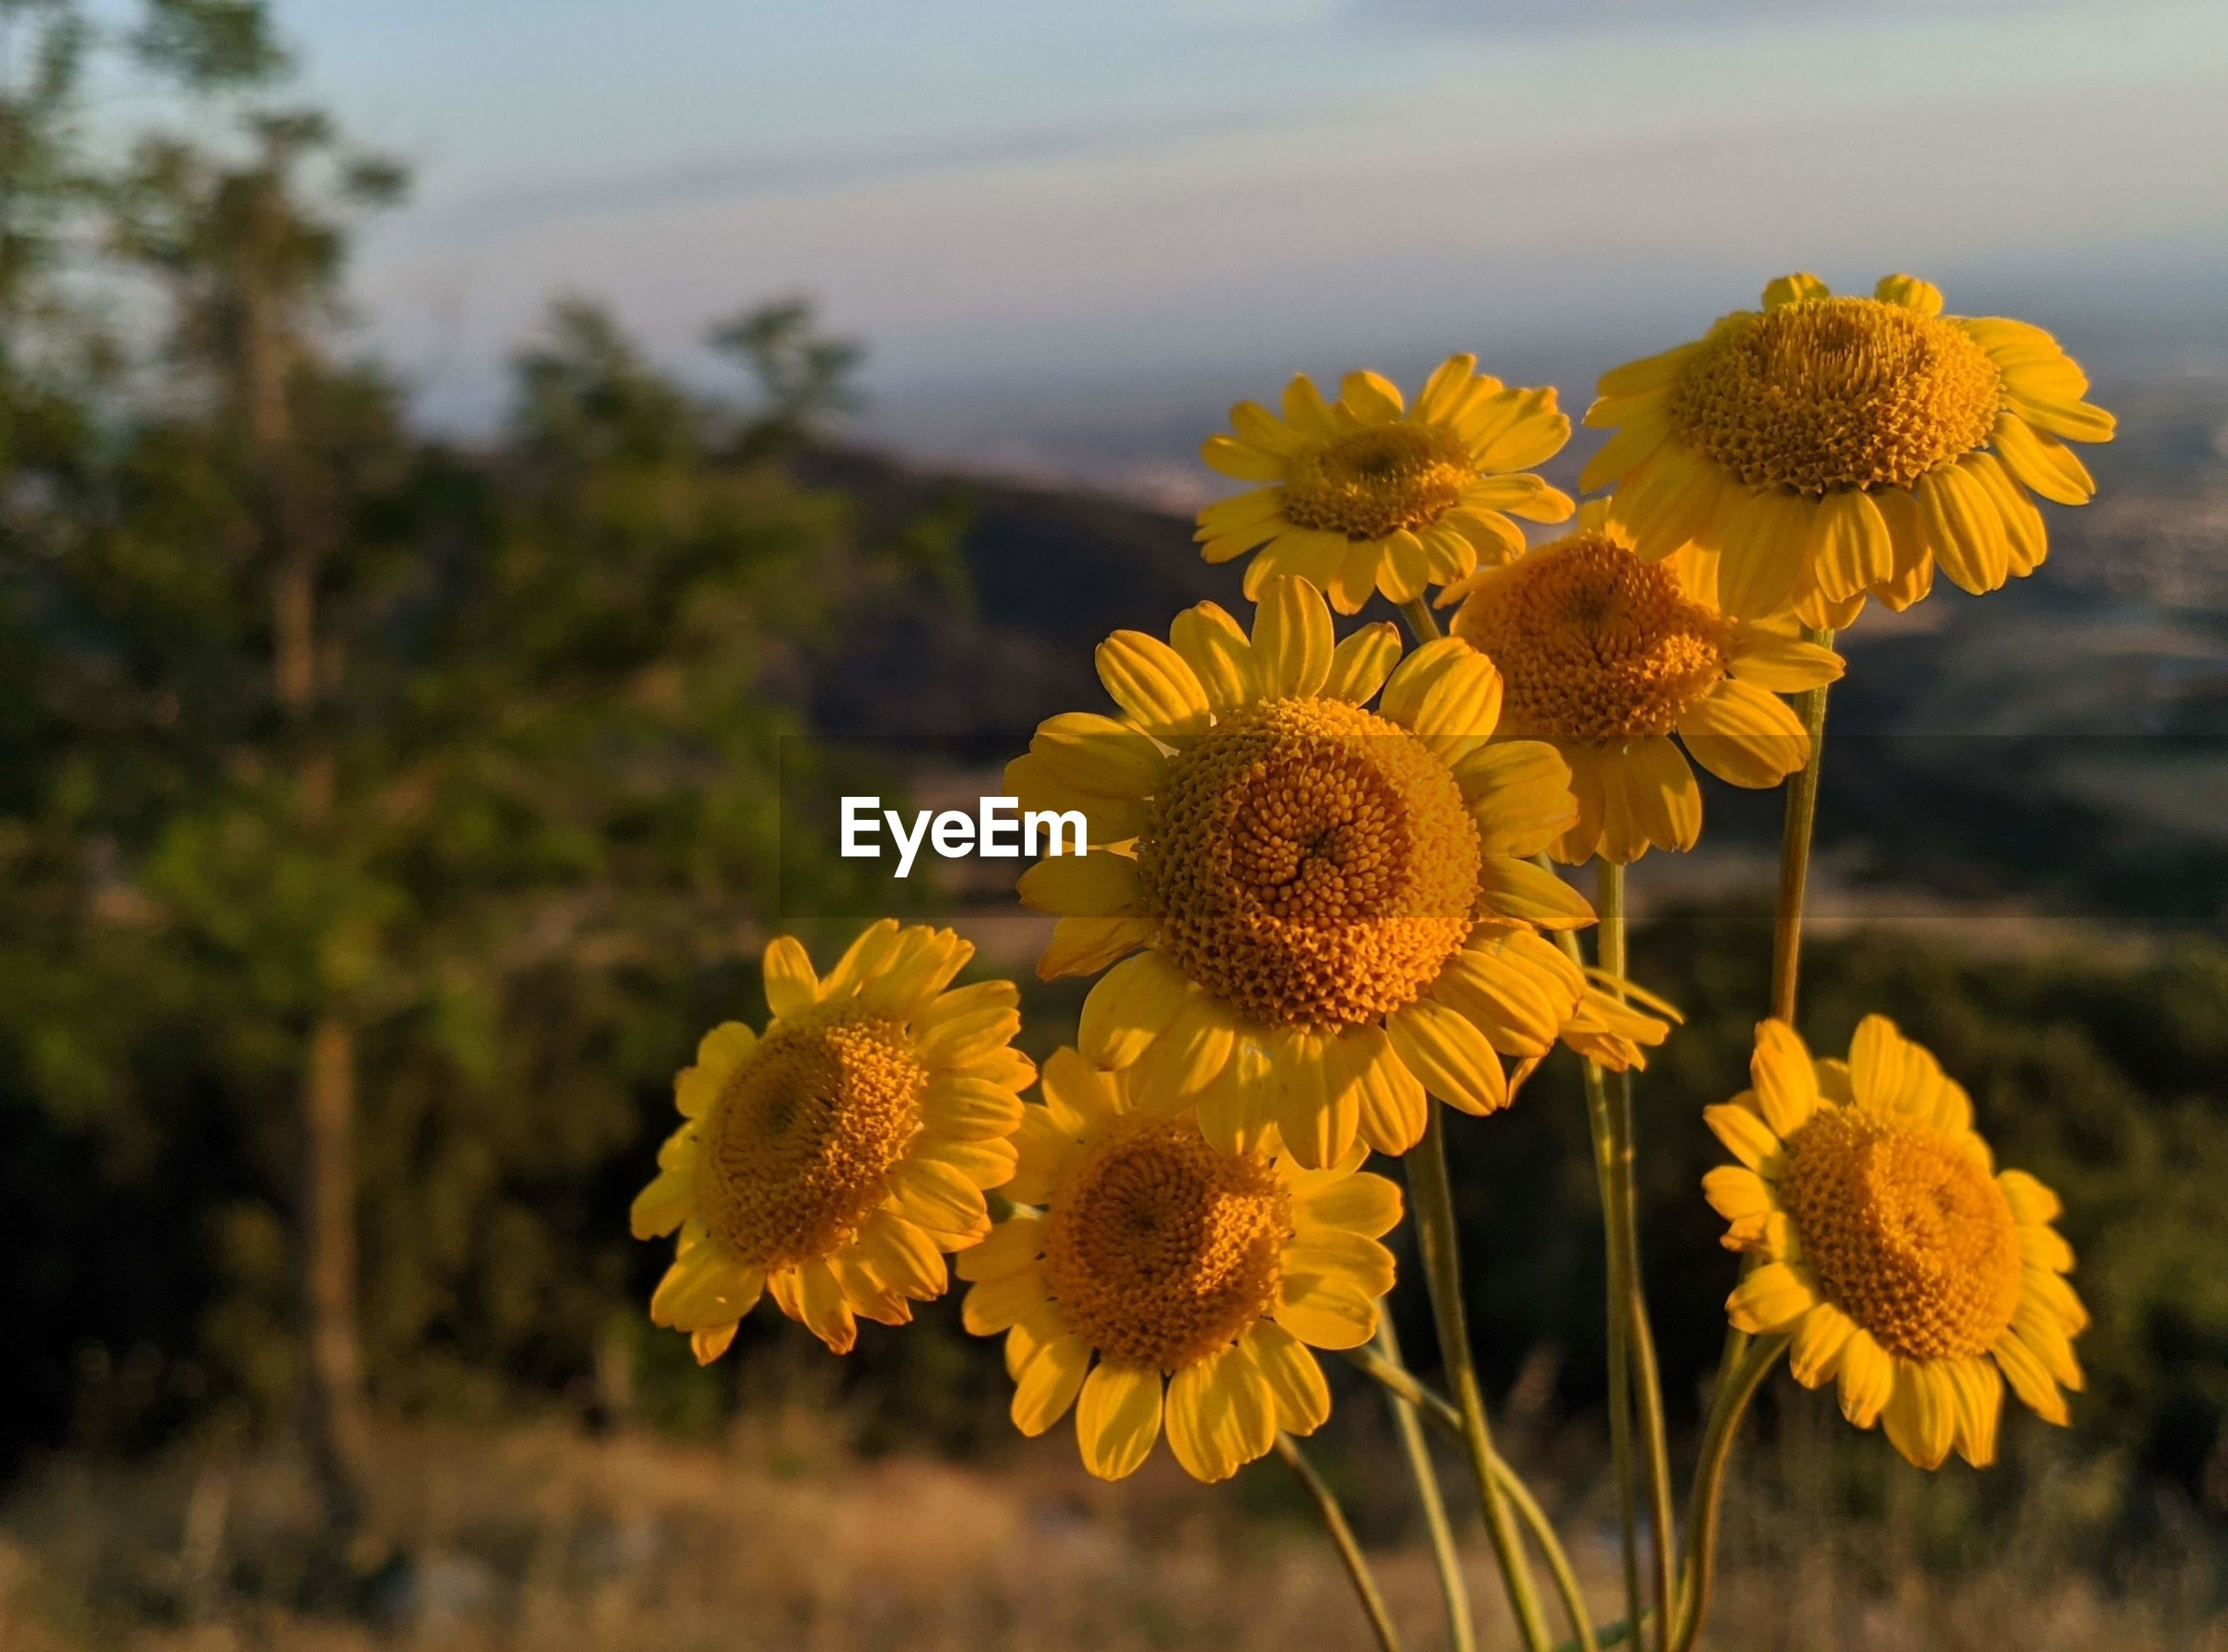 CLOSE-UP OF YELLOW FLOWERING PLANT DURING SUNSET